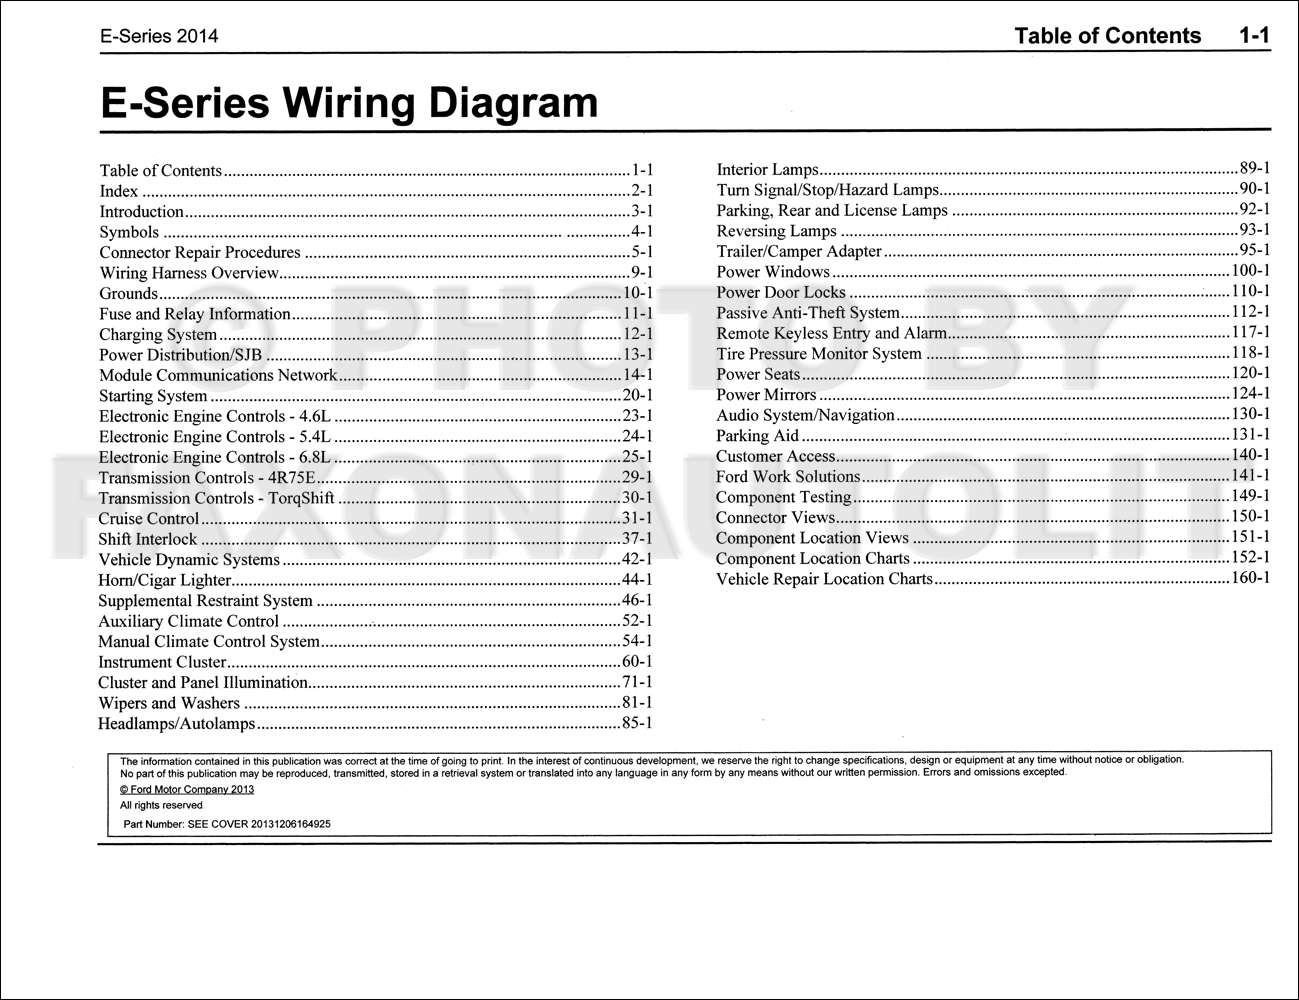 2014FordEconolineOWD TOC 2014 ford econoline wiring diagram manual original van e150 e250 2013 ford wiring diagram at crackthecode.co